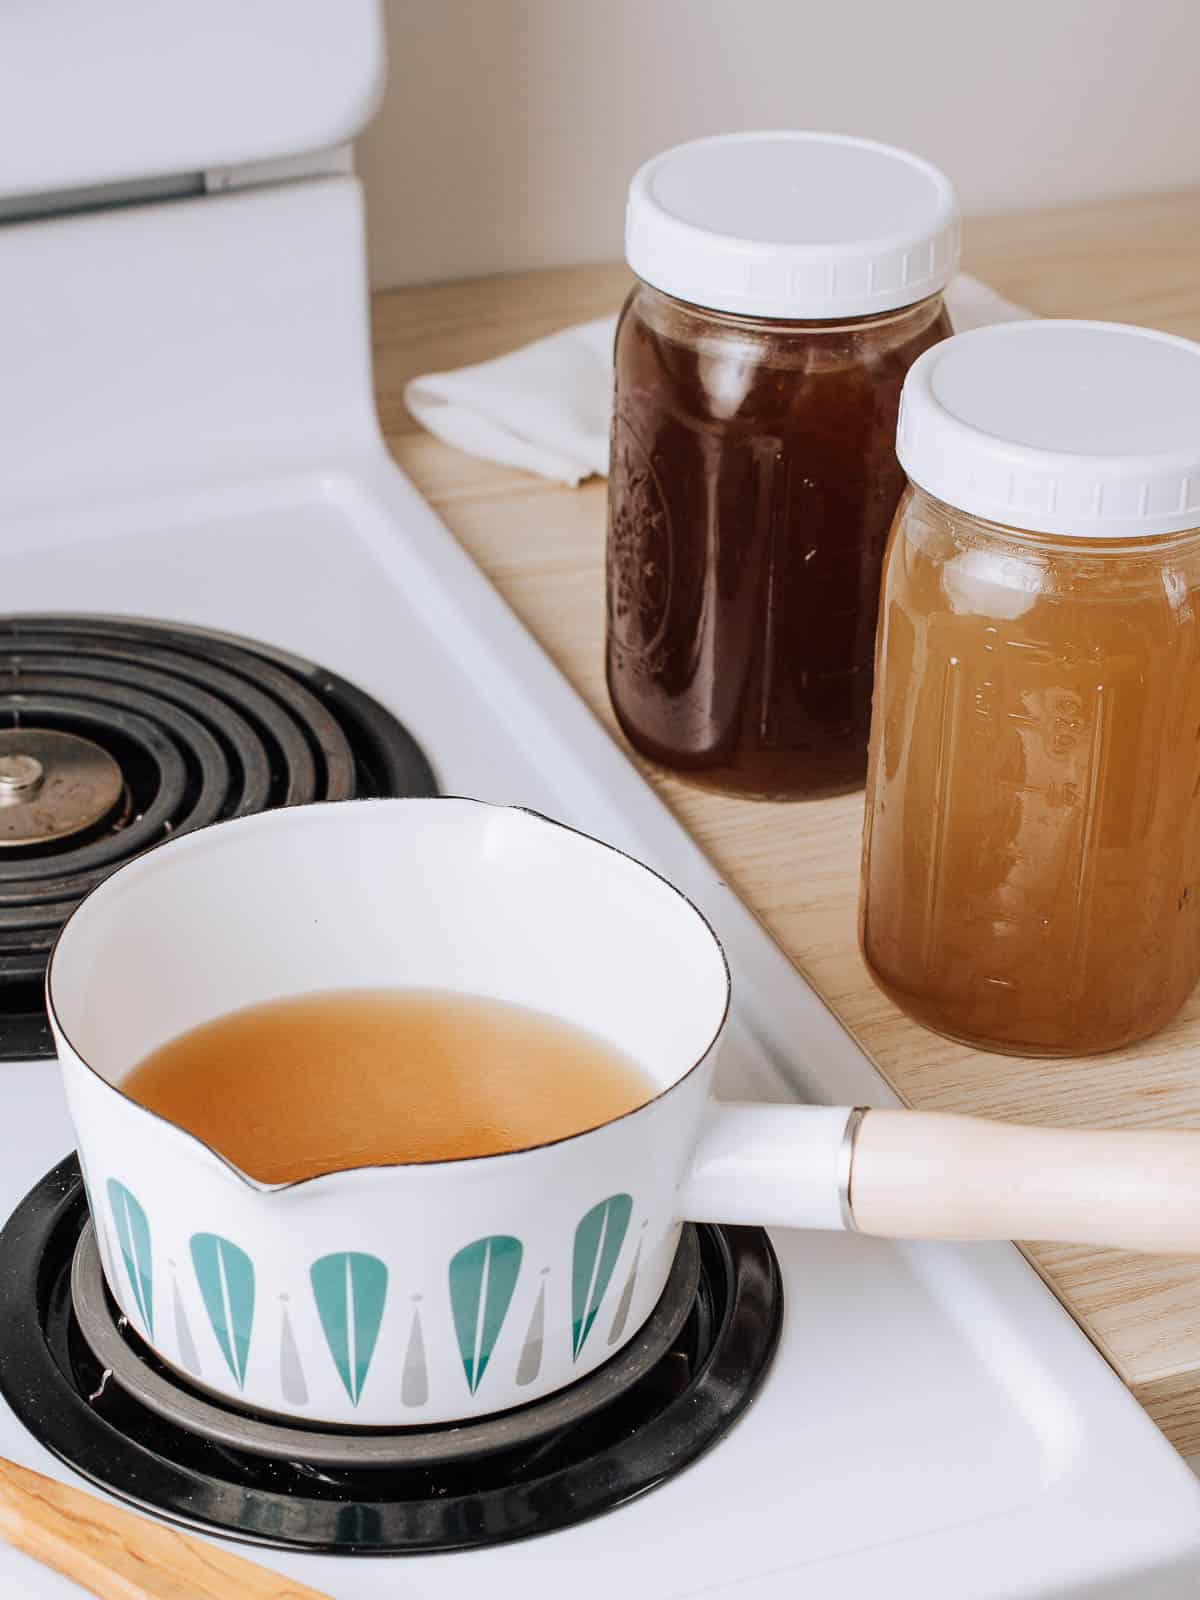 Chicken bone broth warming on the stovetop.